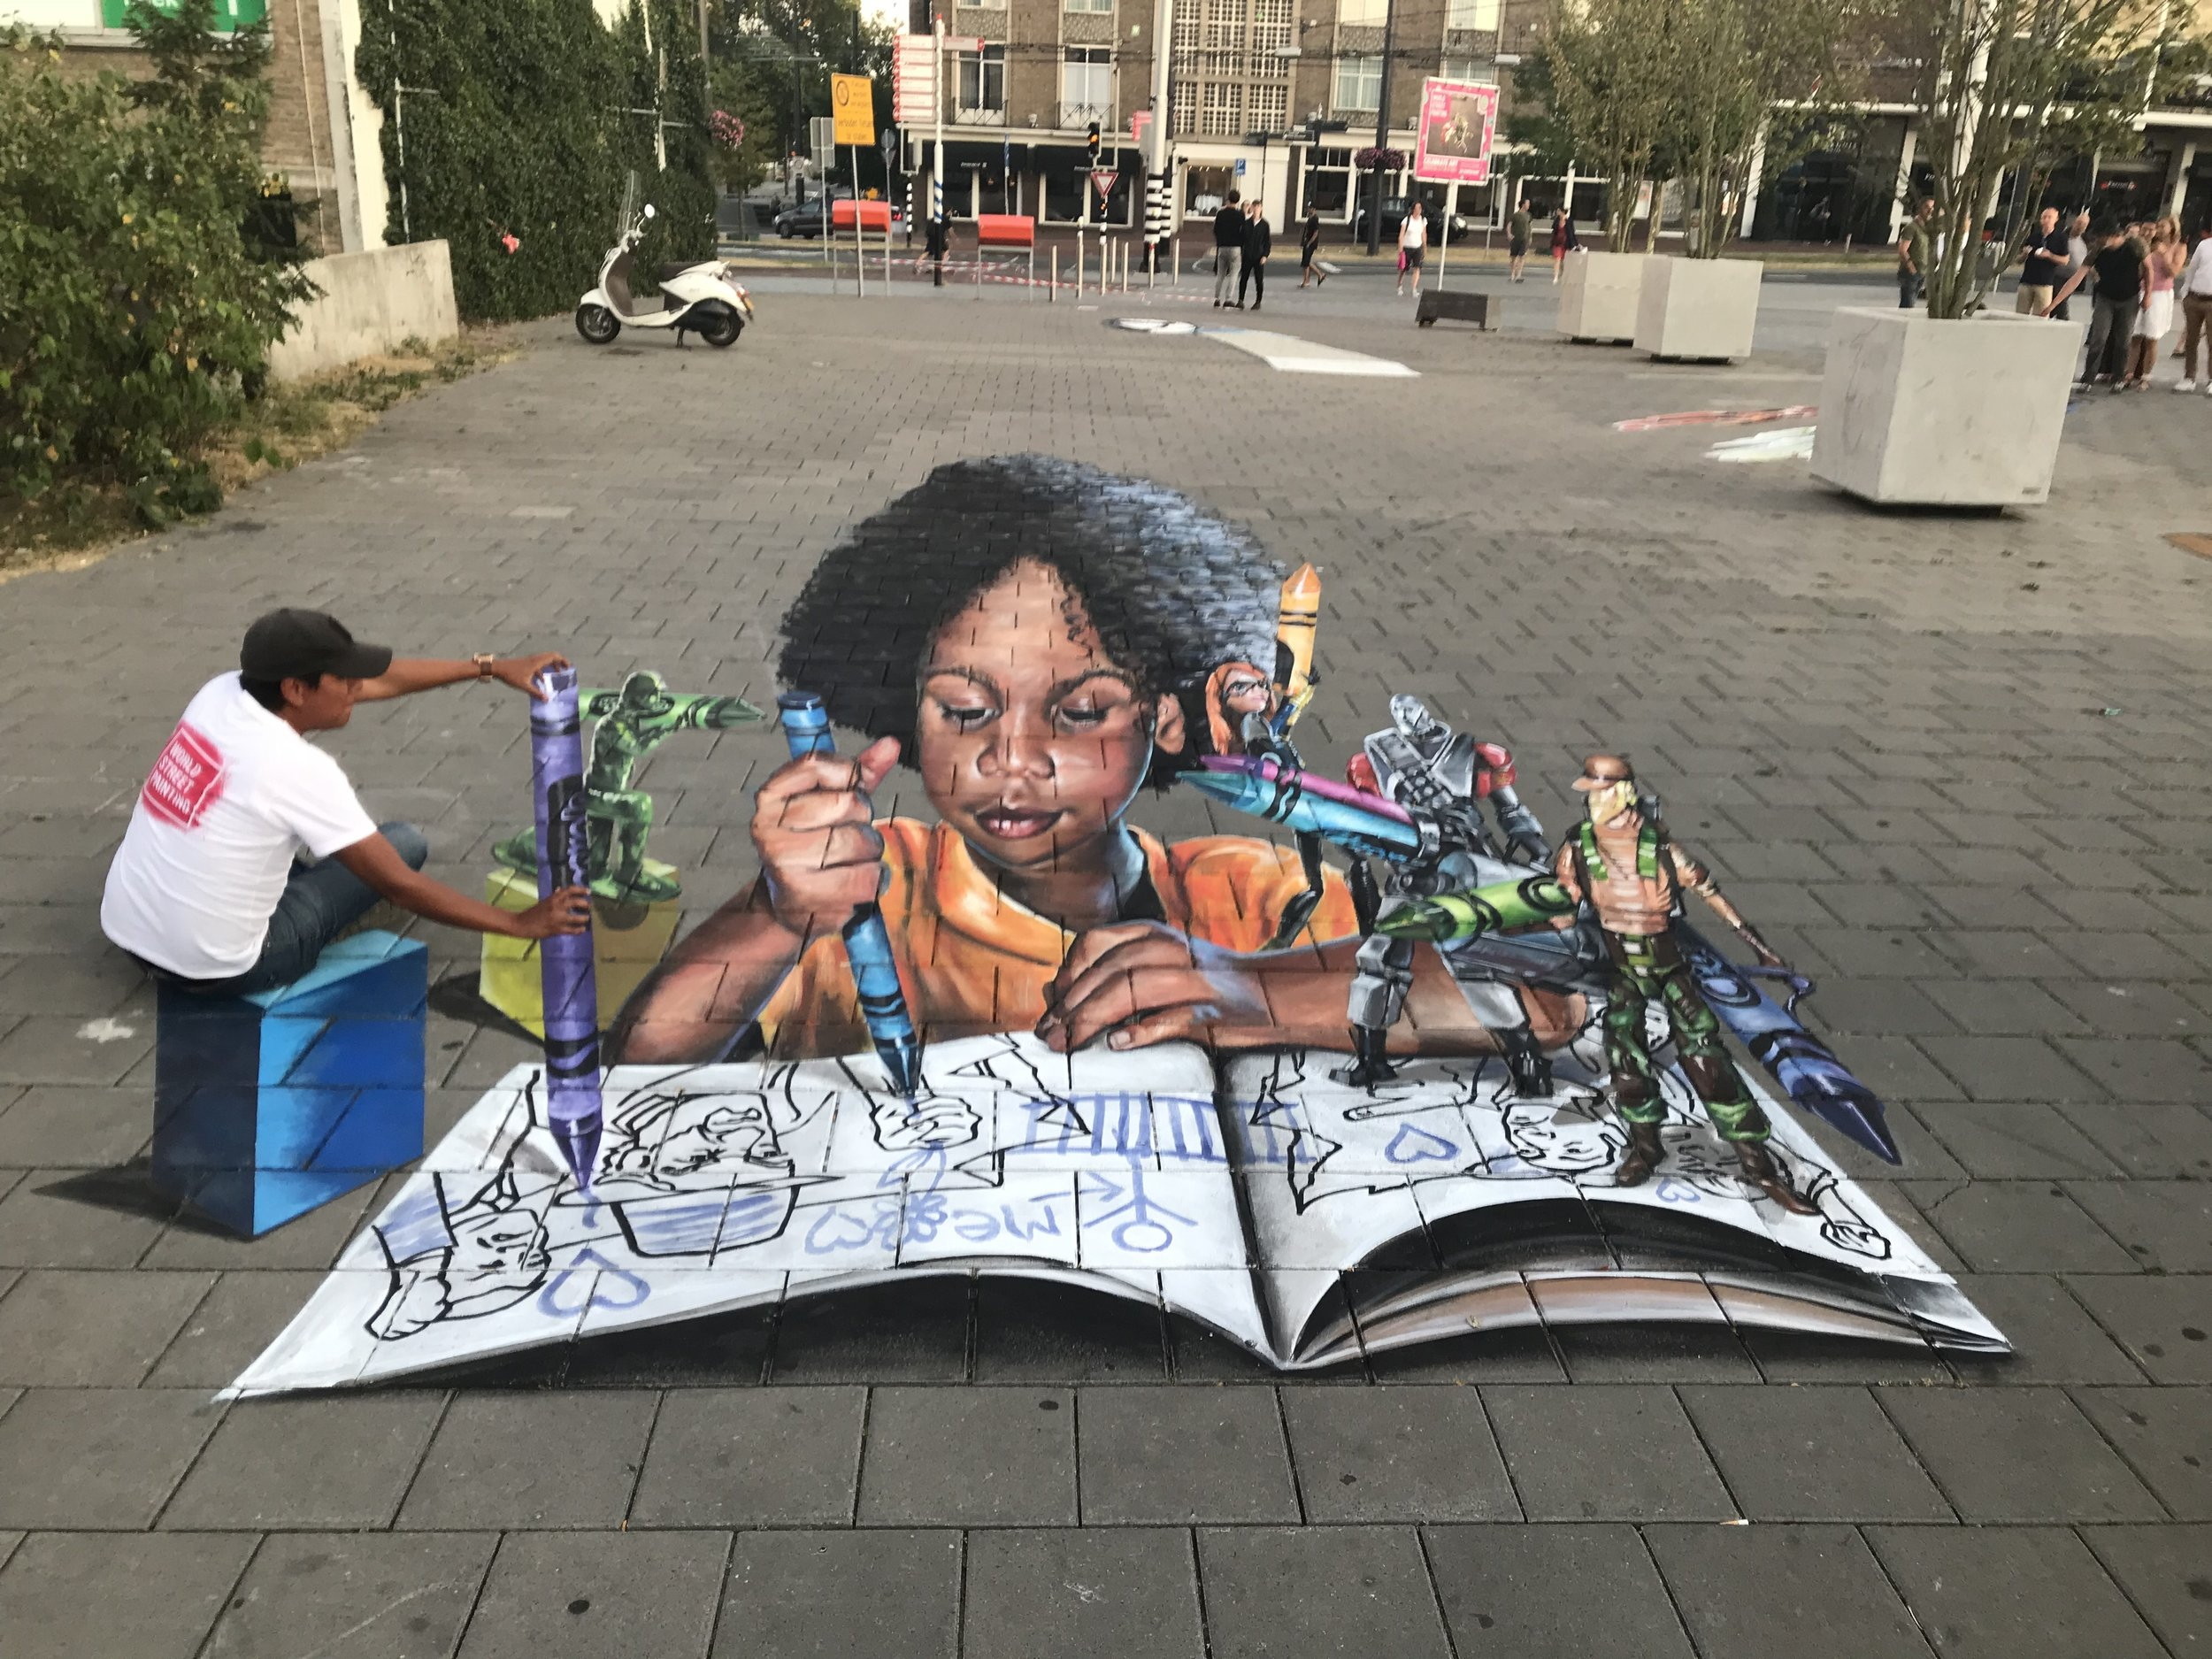 3D Street Painting of a boy solving war and violence in a coloring book with creativity at the World Street Painting Festival in the Netherlands.